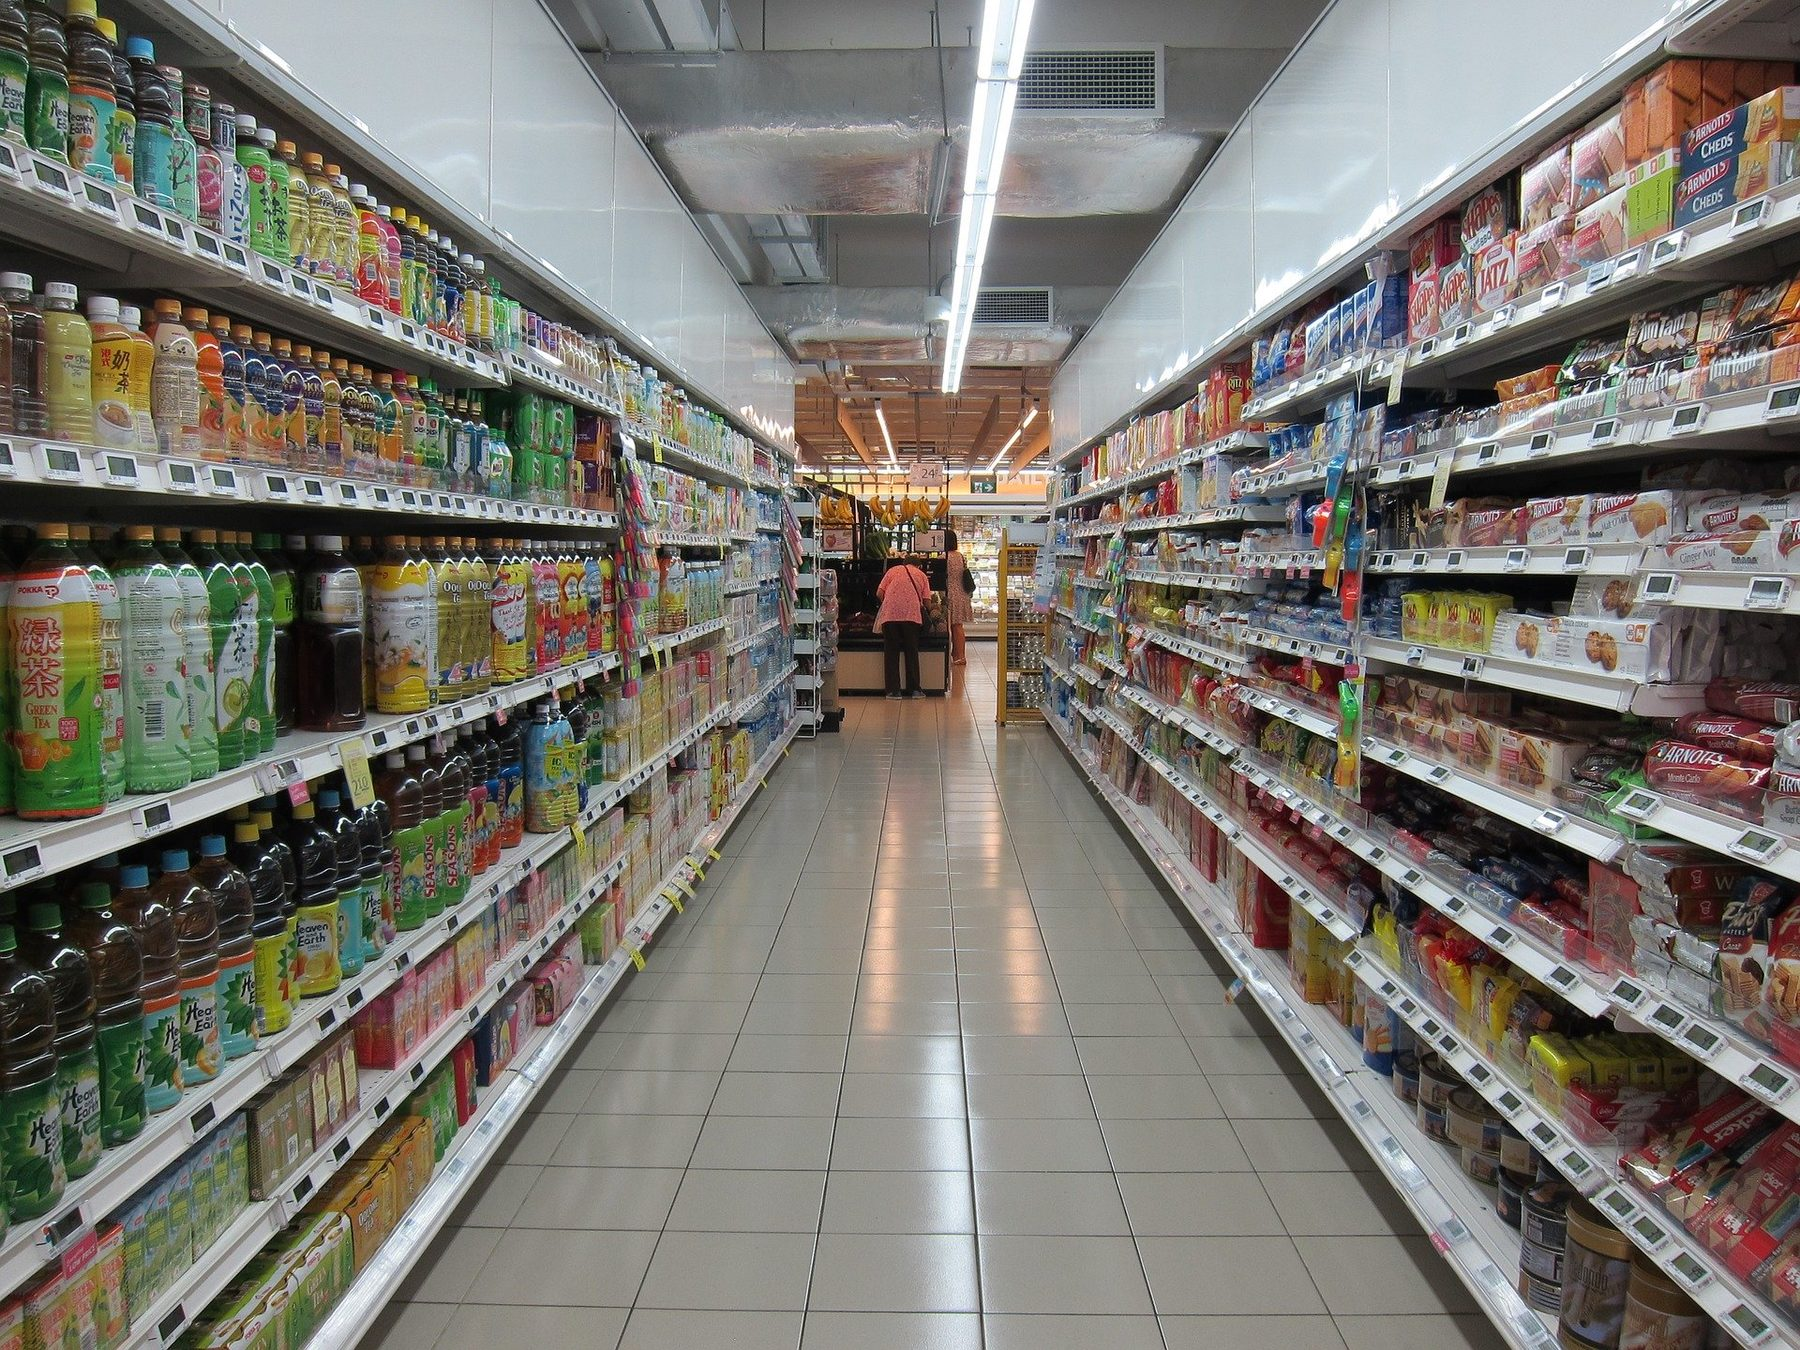 Site Image (Supermarket Shelves, Aisle, Food, Groceries, Food, Products, Shop, Shopping, Stock)